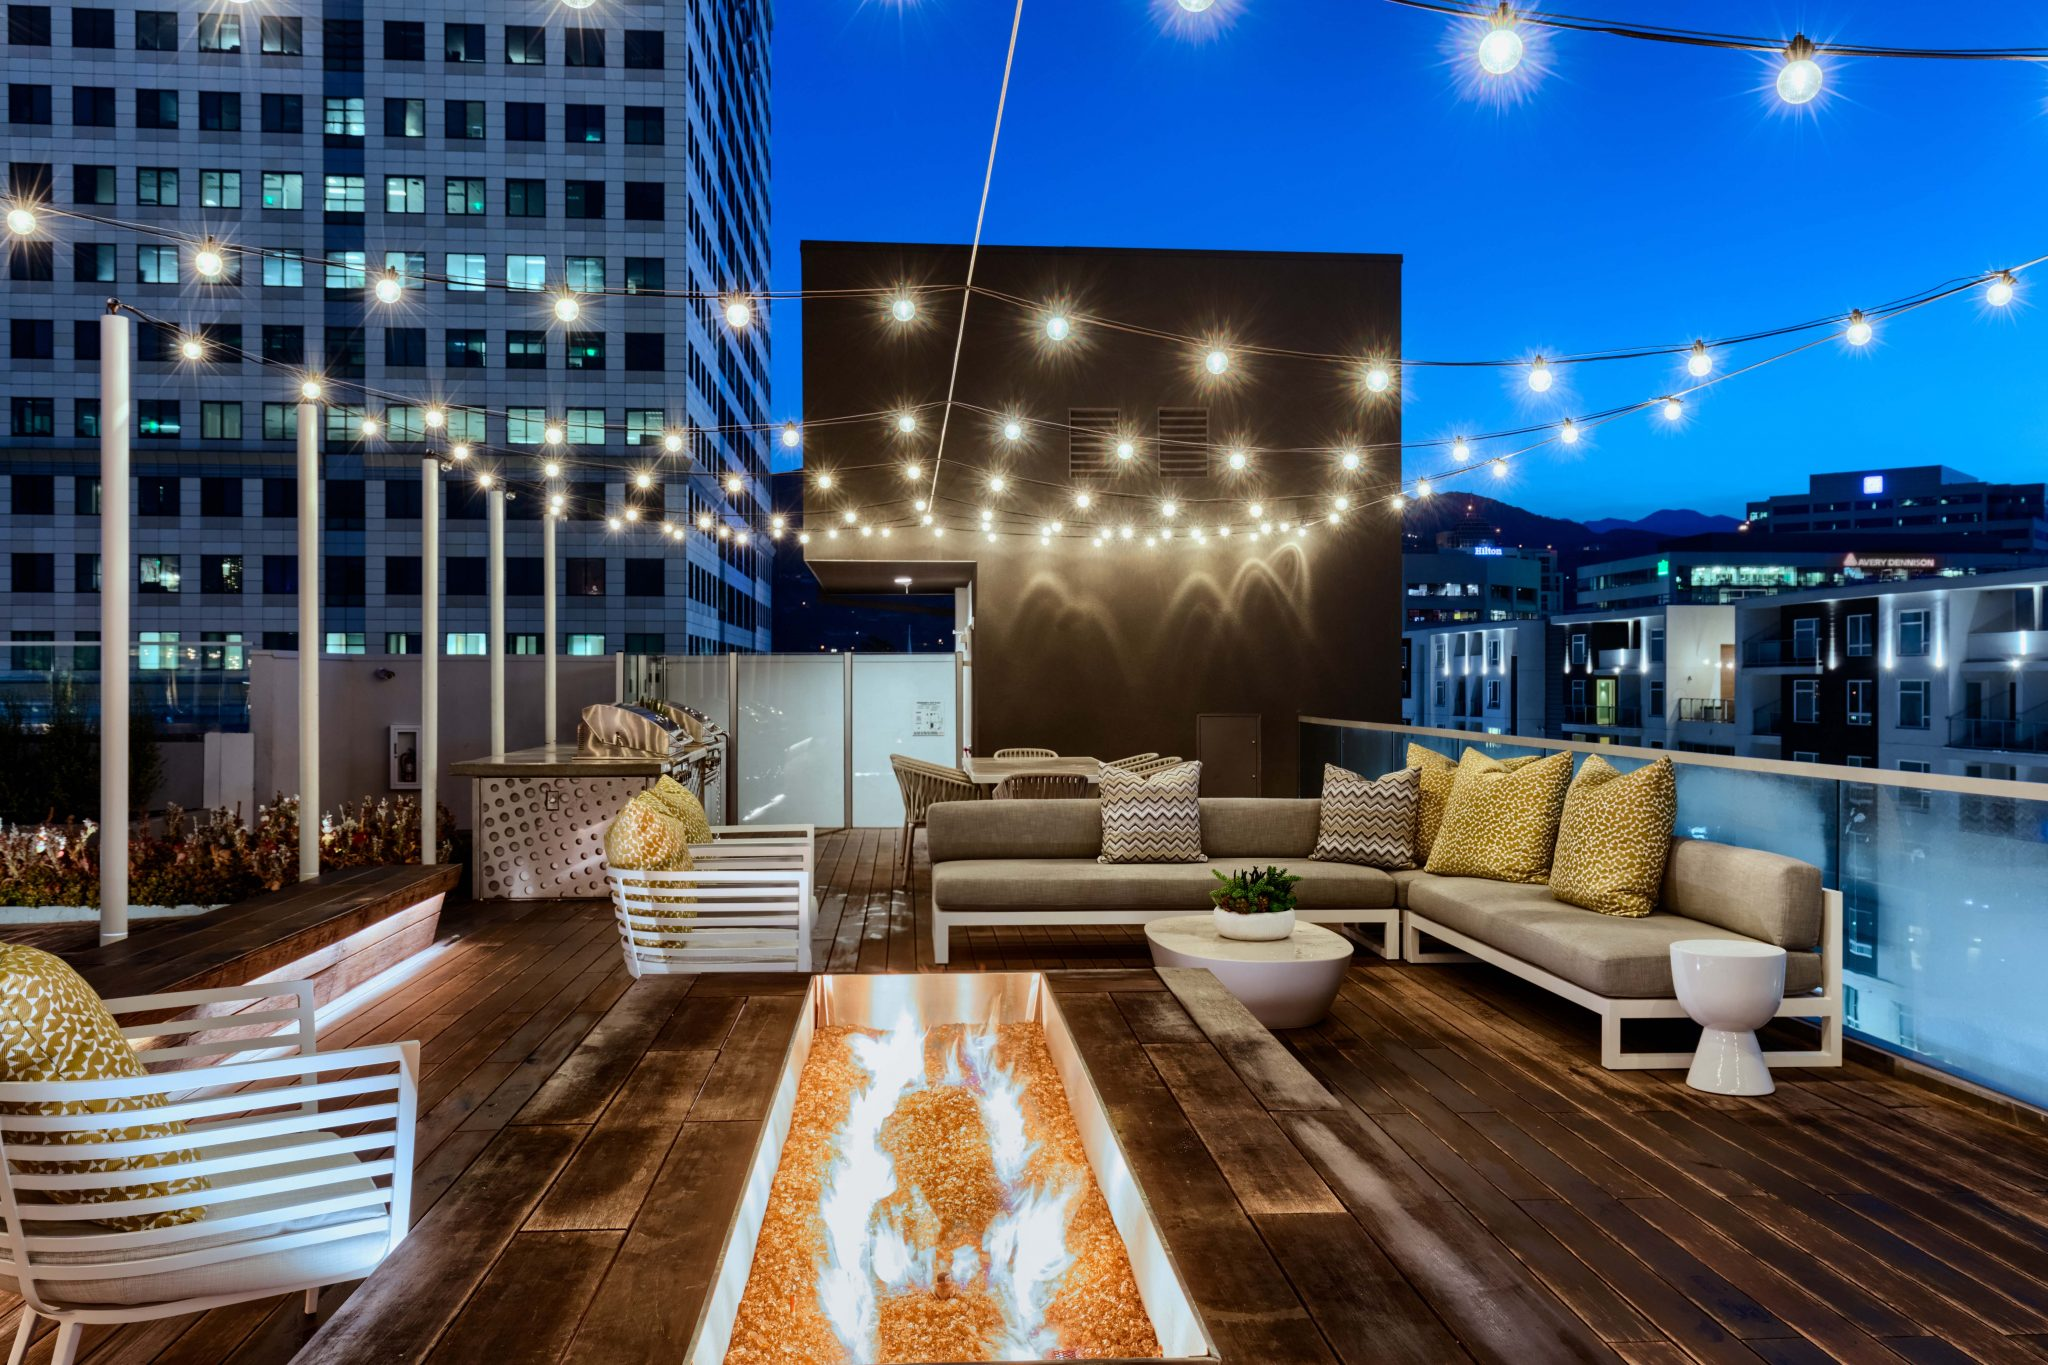 Exterior of rooftop seating area with fire pit and cafe lights overhead